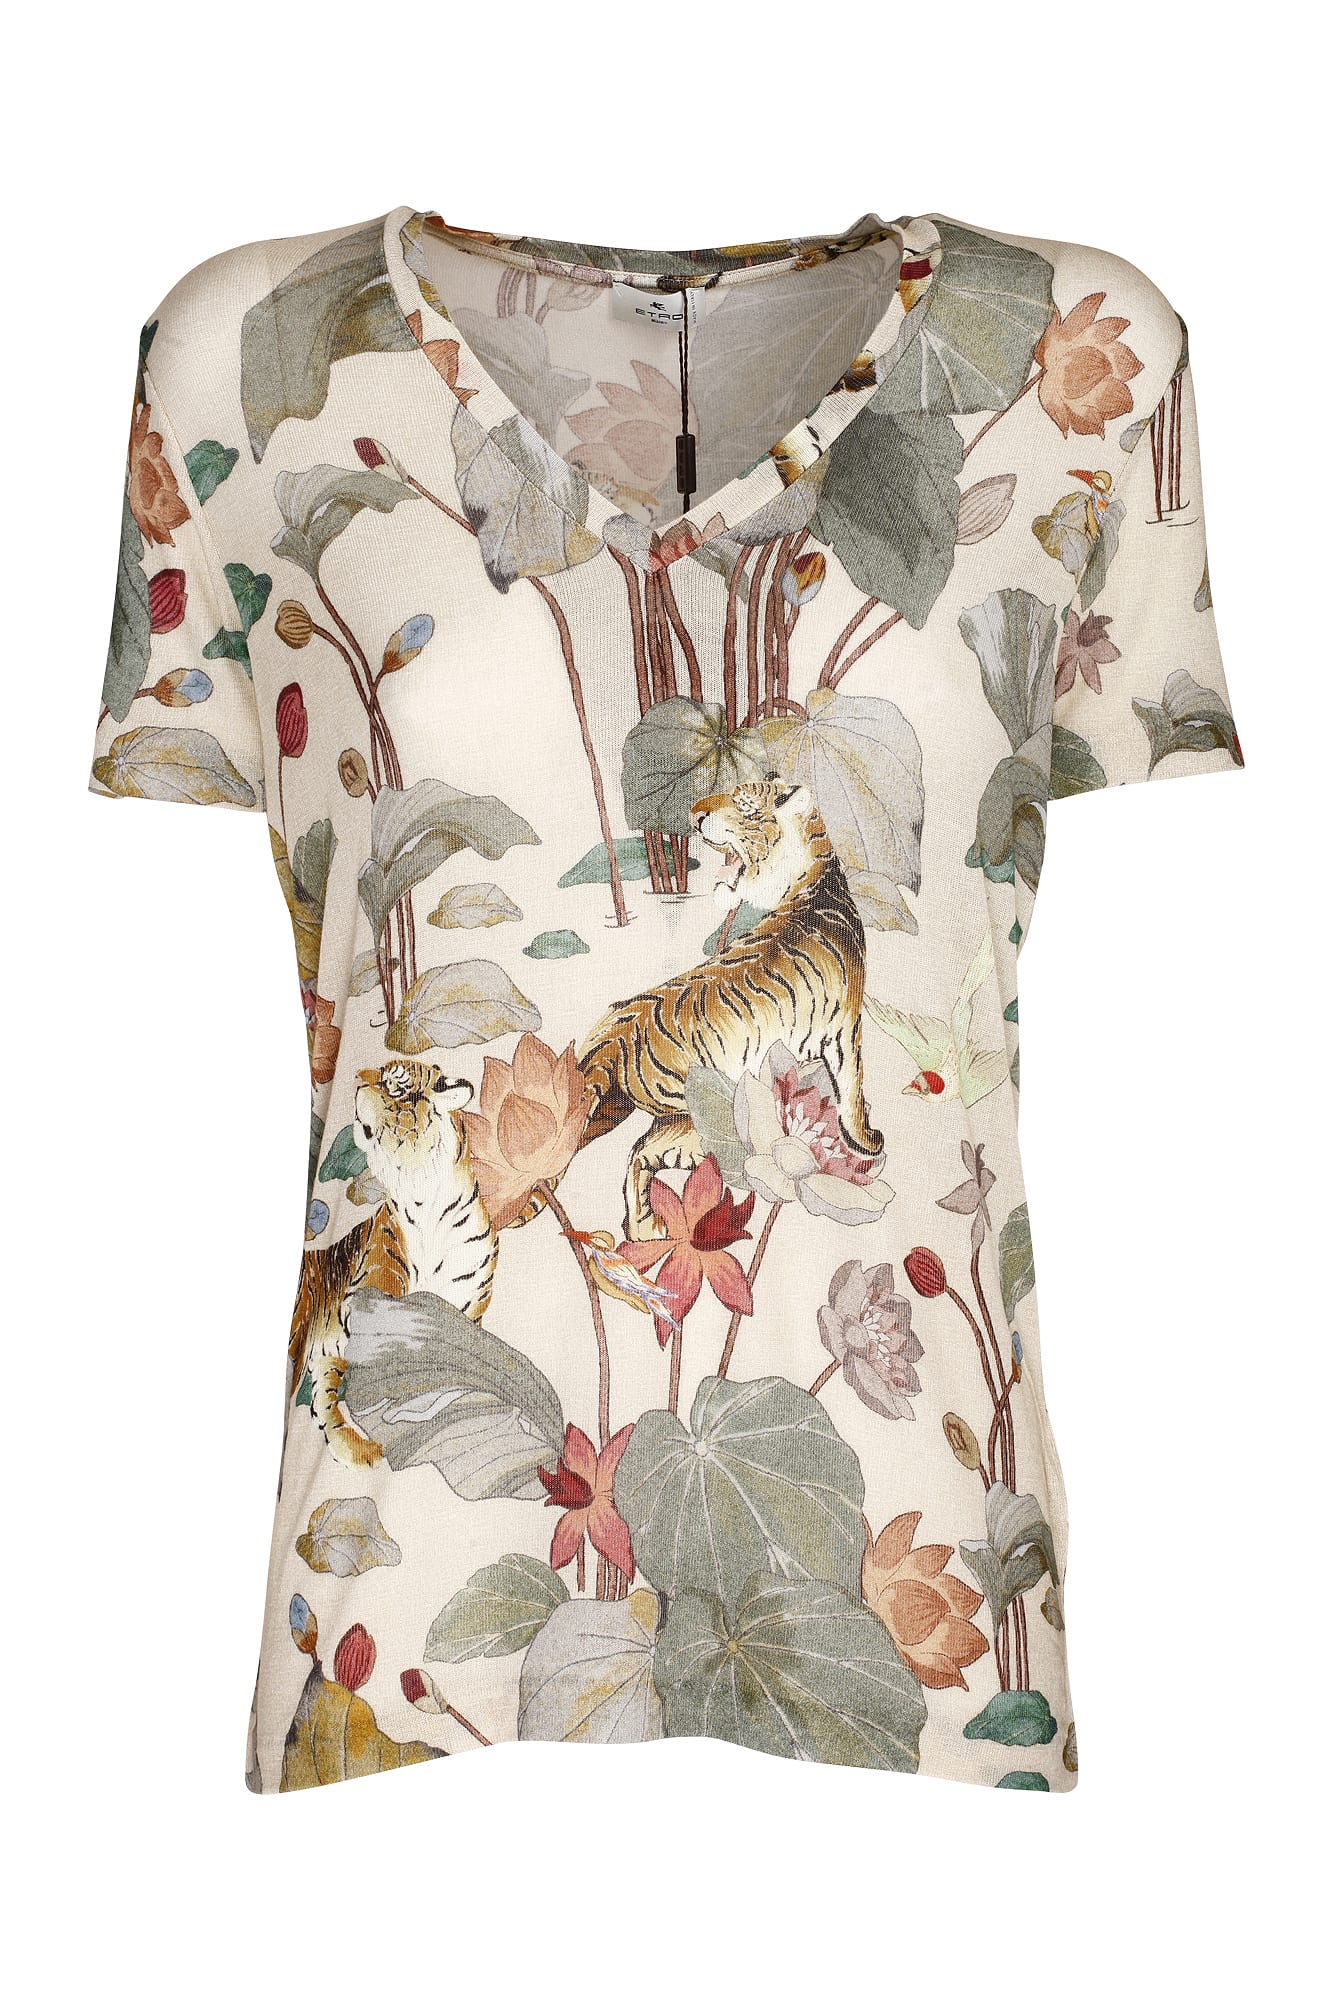 Etro Clothing COTTON JERSEY T-SHIRT DECORATED